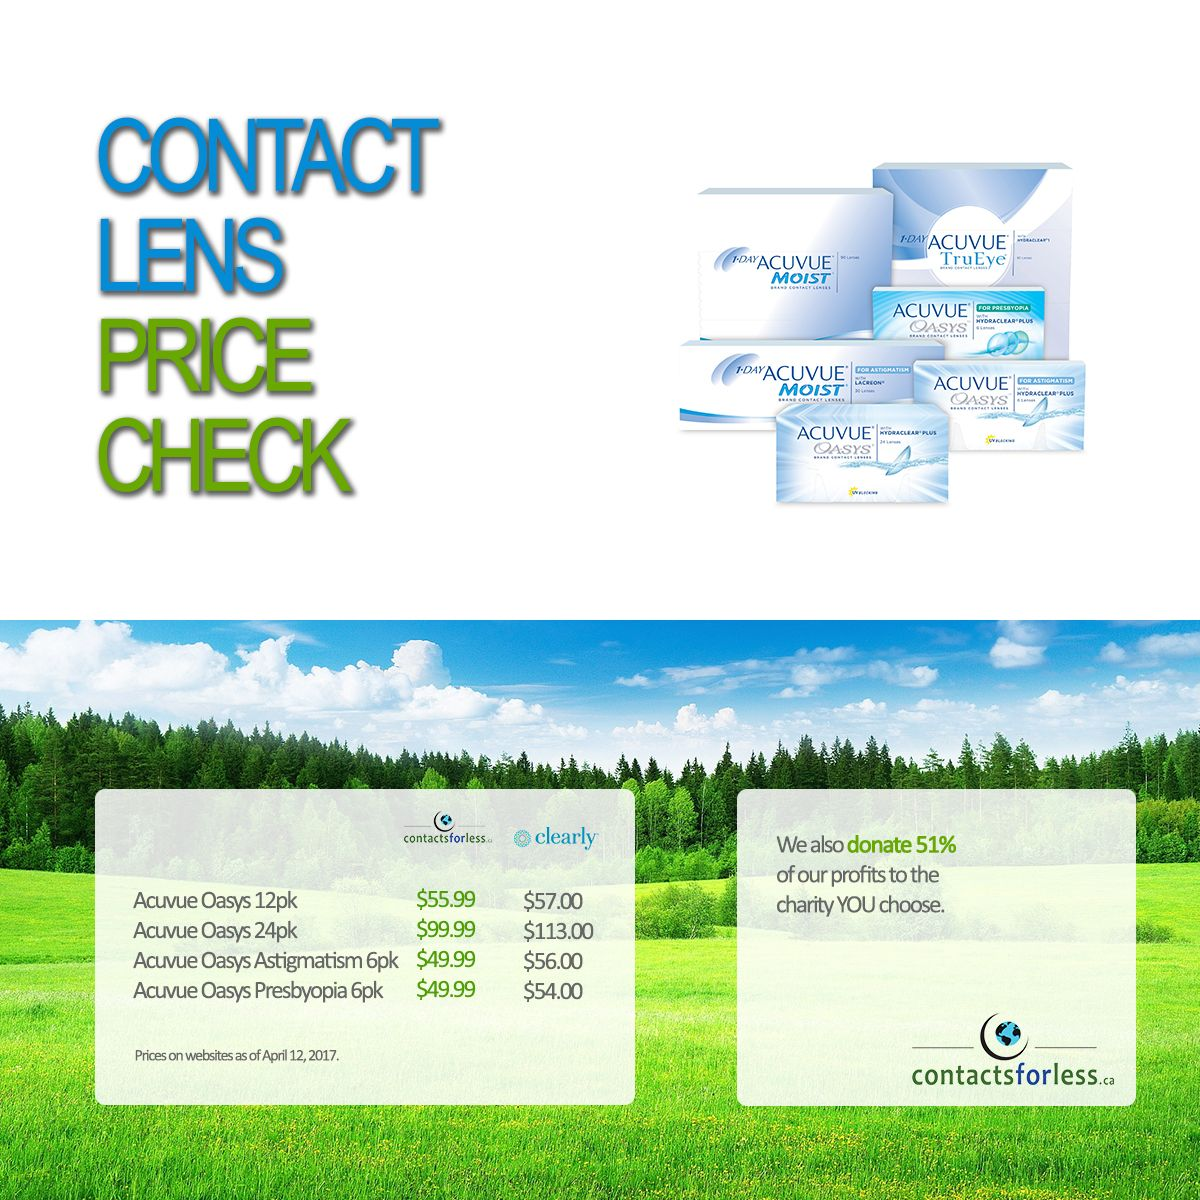 How do our prices on contacts compare to our big